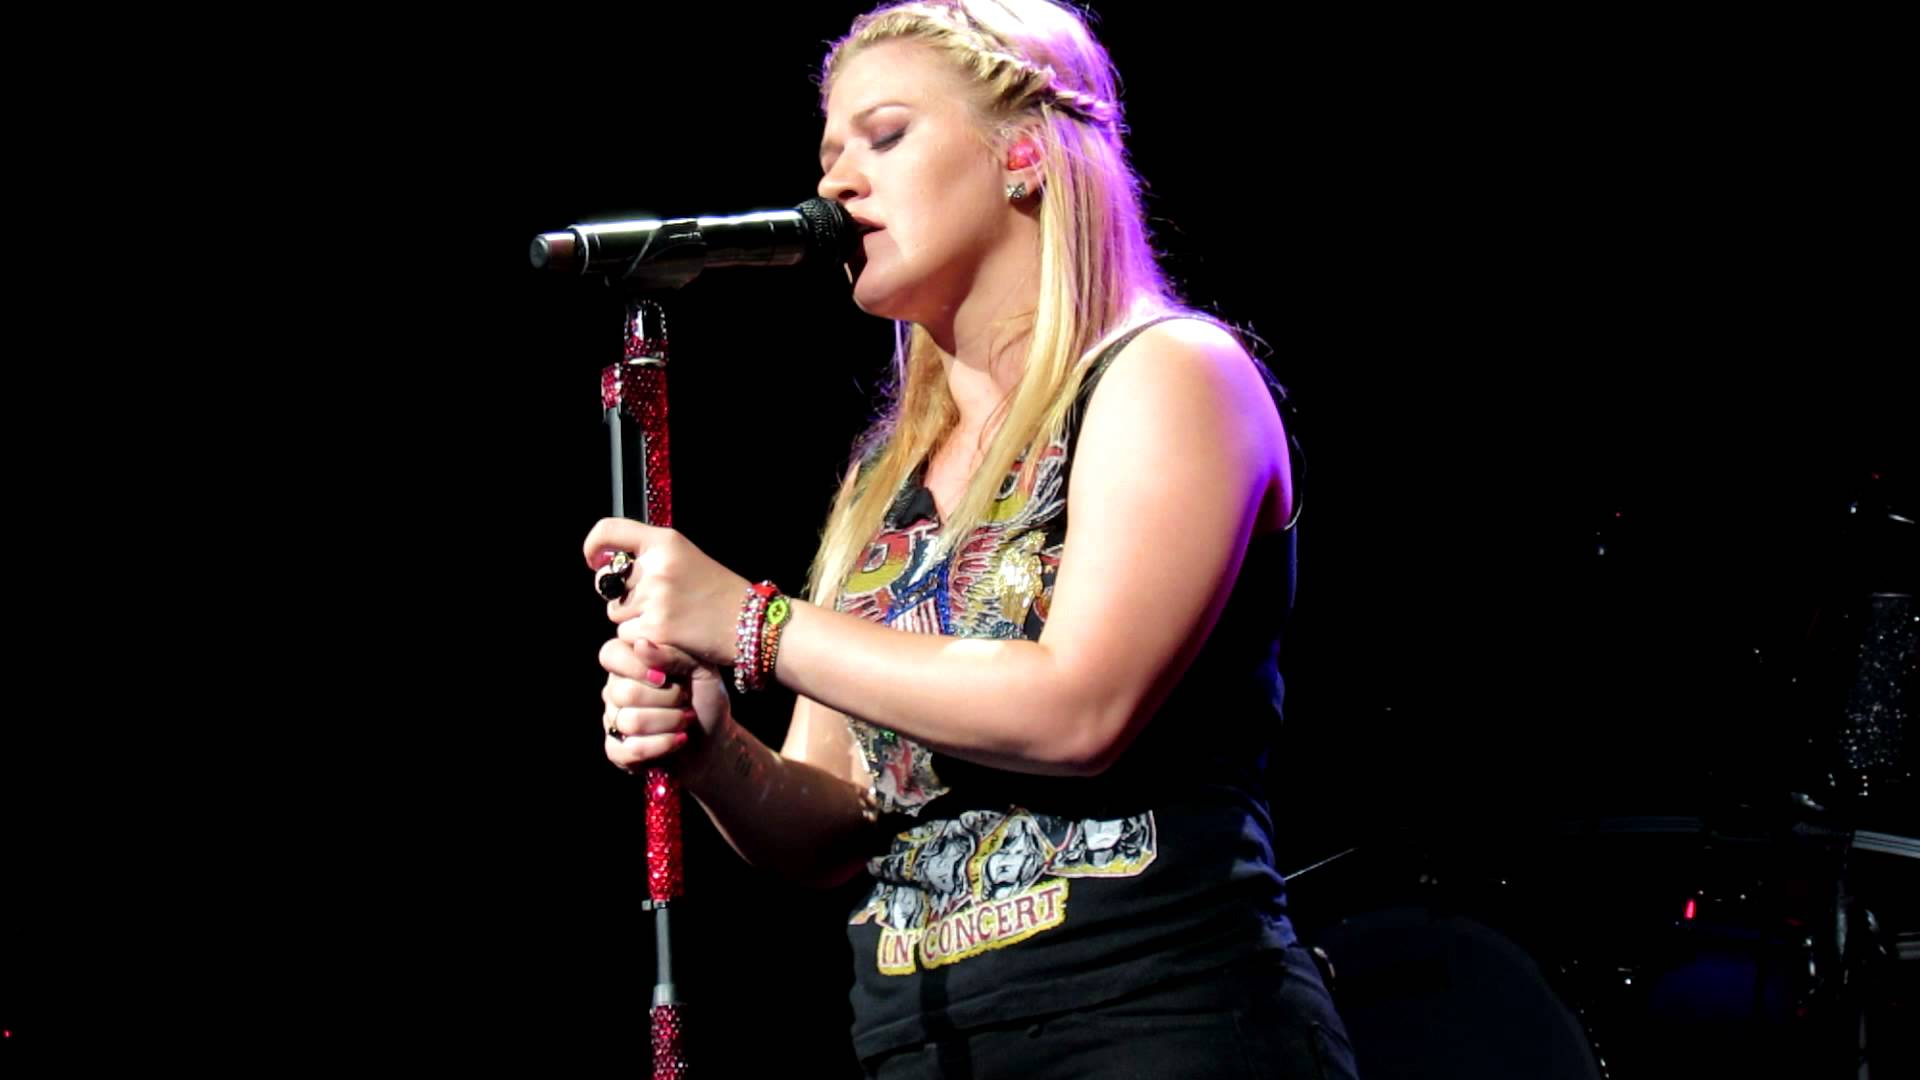 Kelly Clarkson holds 'Open Mic Night' contest for upcoming tour